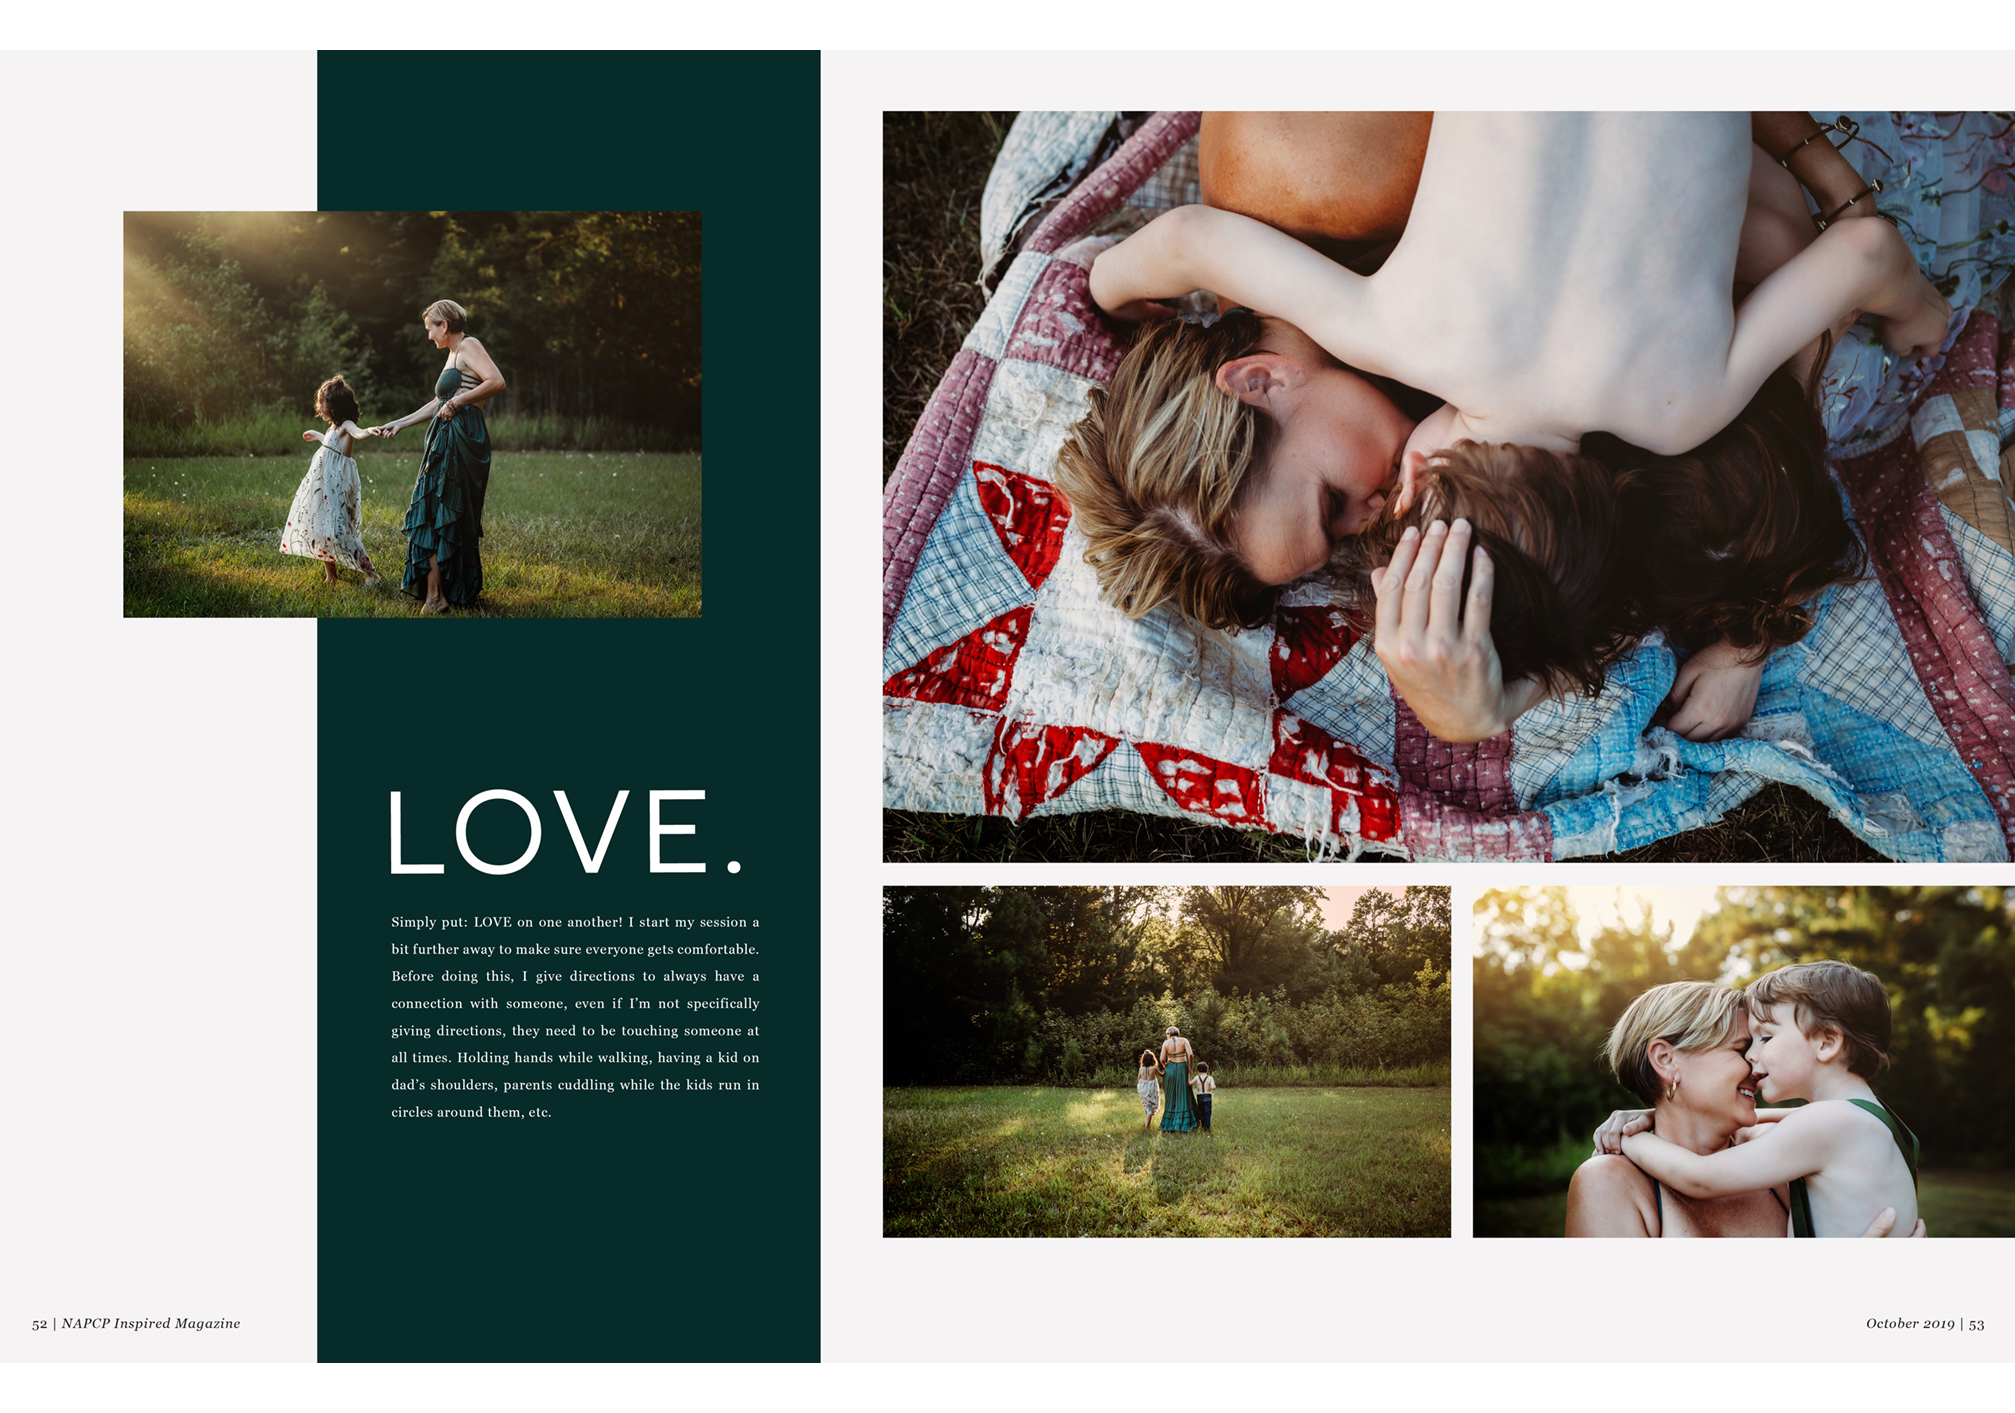 LOVE image spread by Gina Whalen, NAPCP Inspired Magazine, October 2019